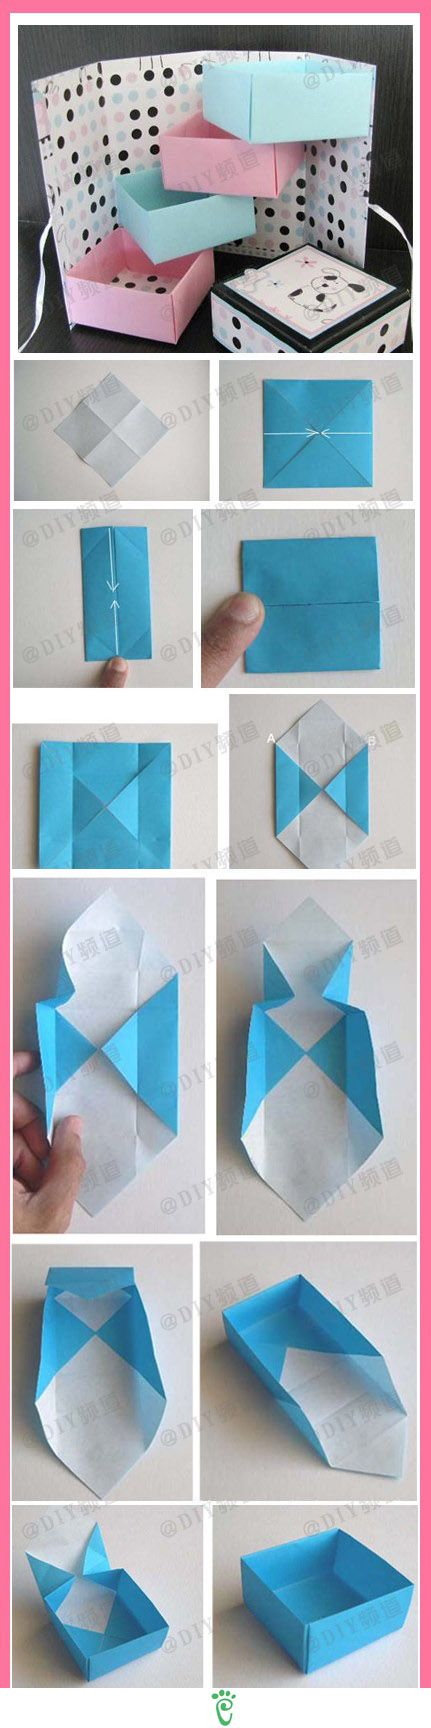 DIY Paper Box Pictures, Photos, and Images for Facebook, Tumblr, Pinterest, and Twitter: